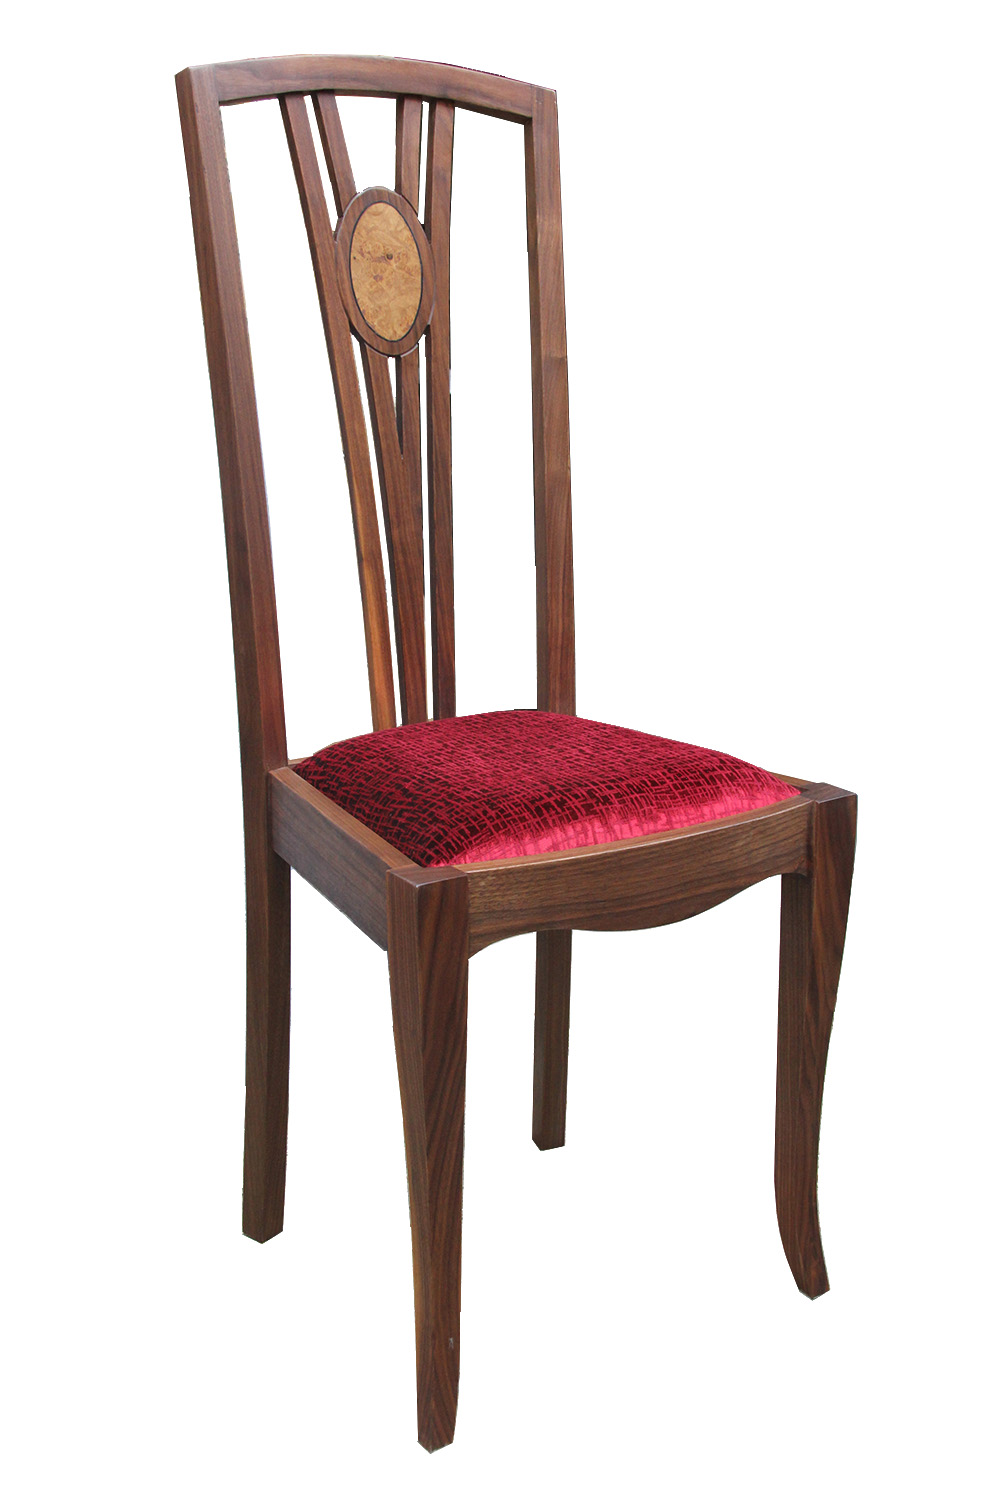 Walnut and burr oak dining chair